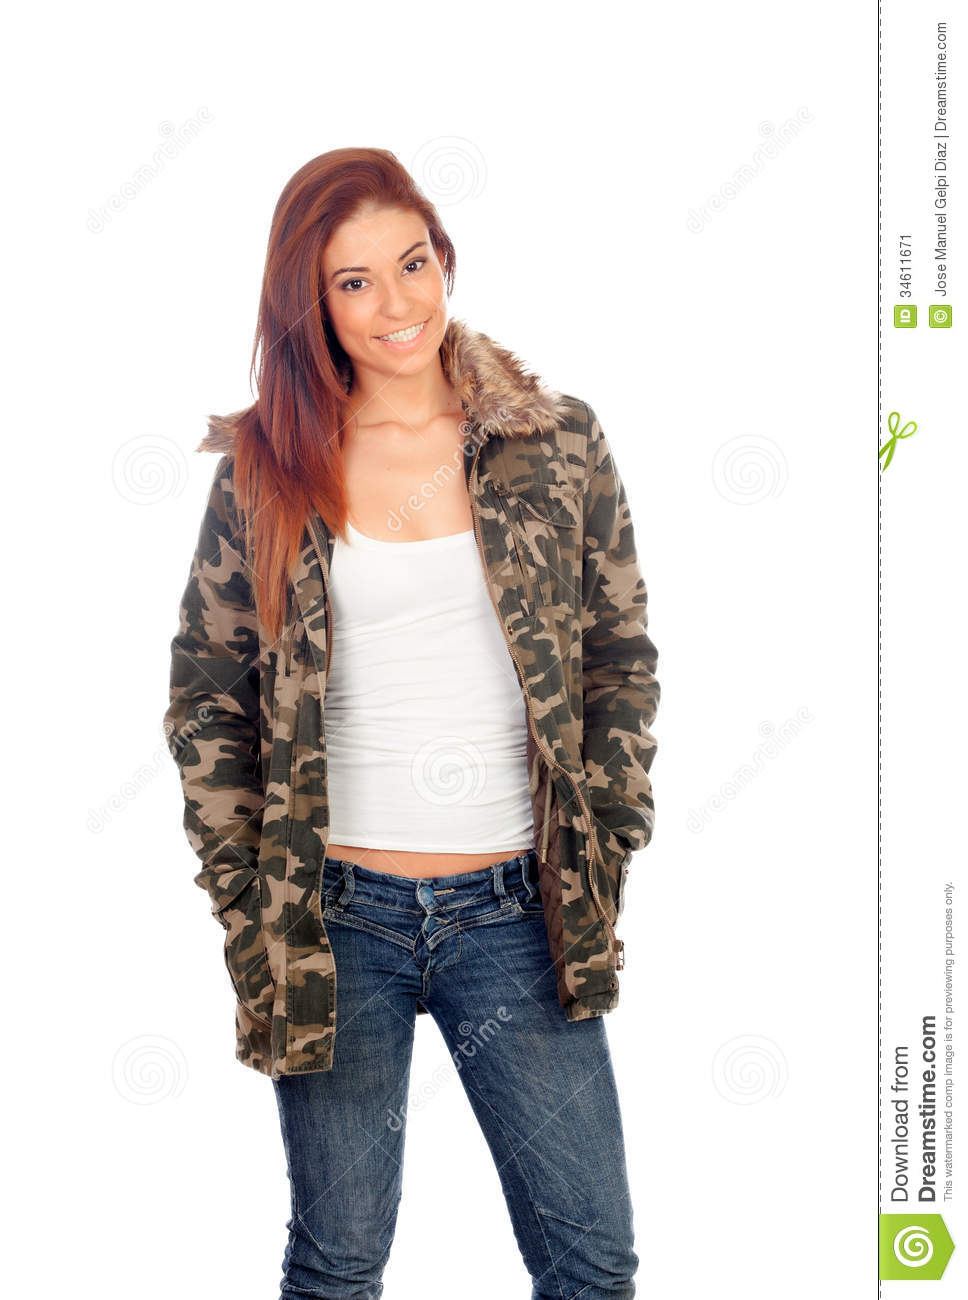 Attractive Girl With Military Style Jacket Stock Image - Image